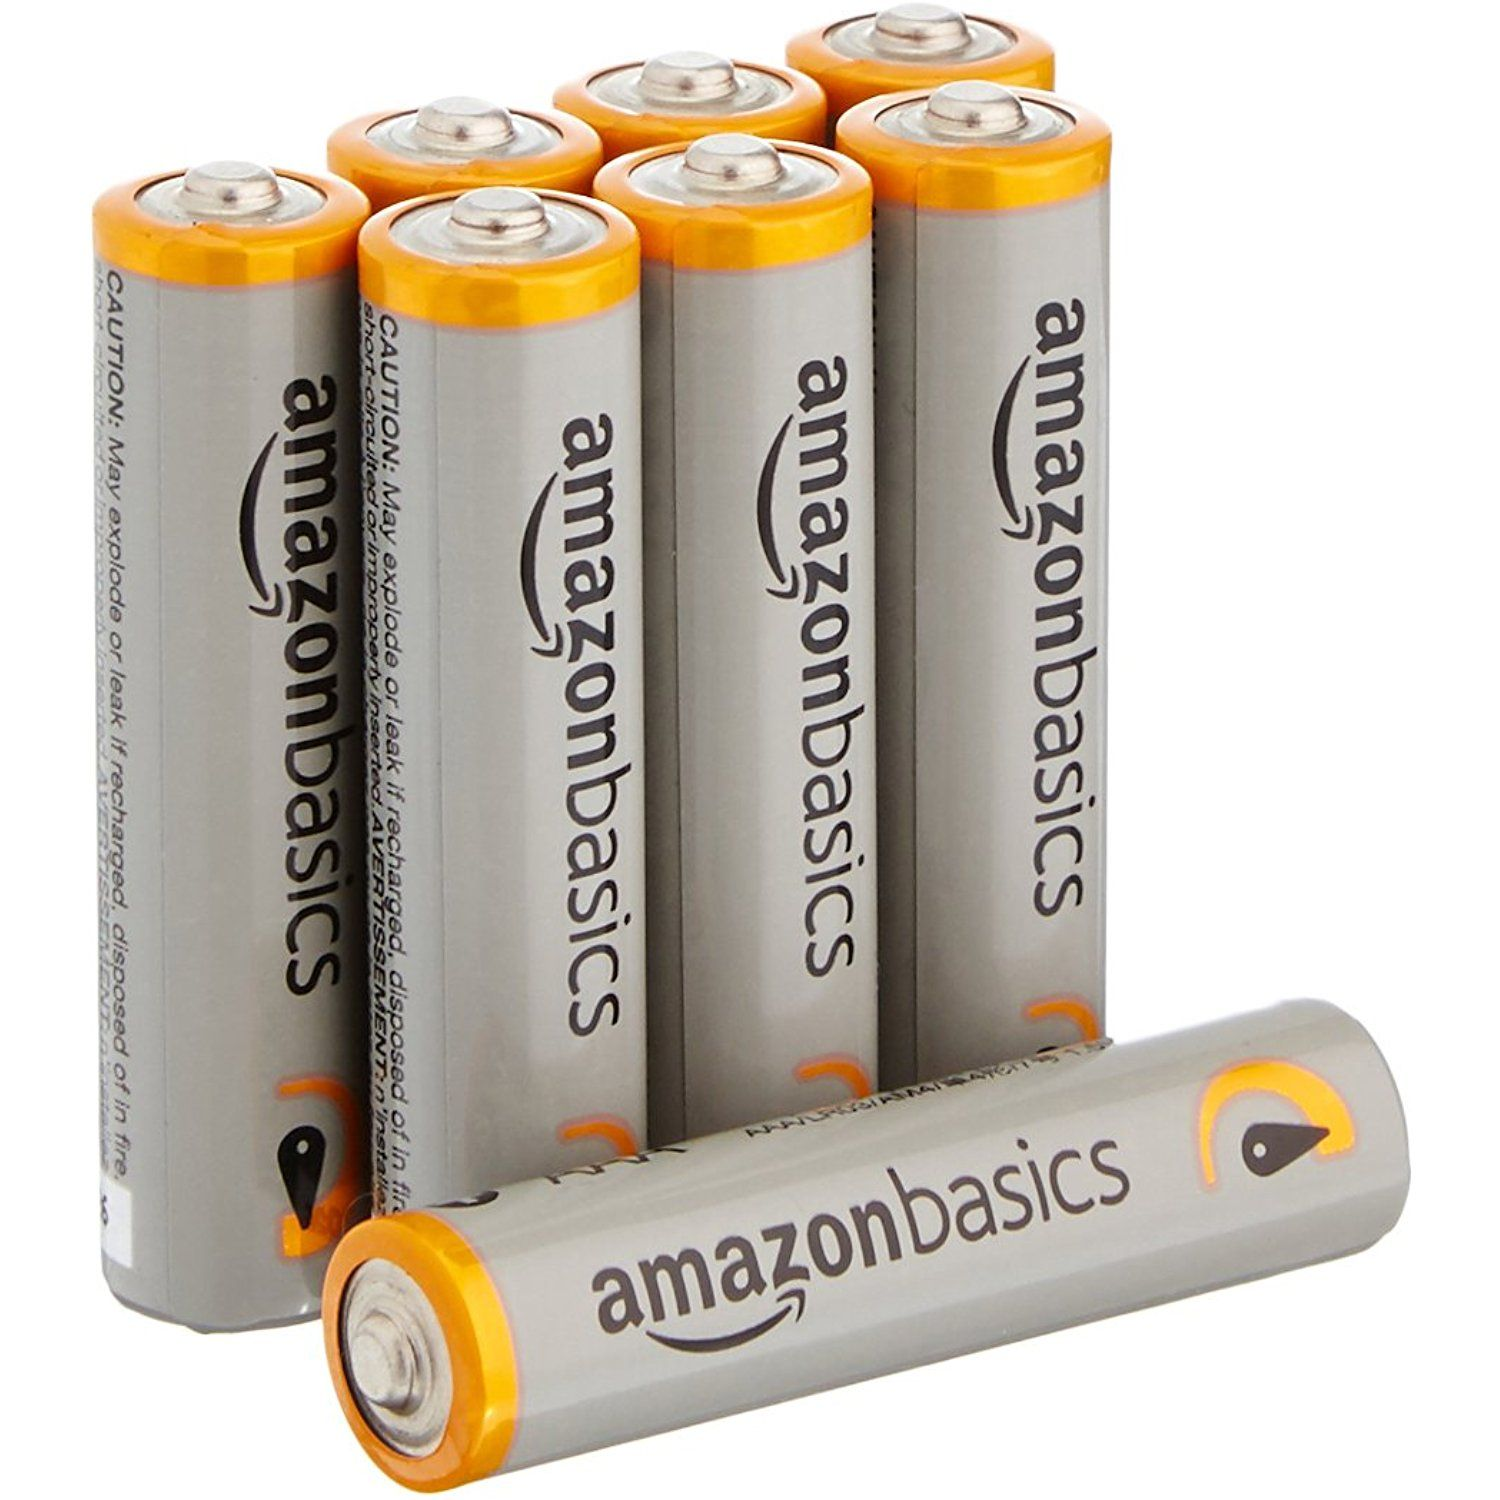 Amazonbasics Aaa Performance Alkaline Batteries 8 Pack Packaging May Vary To View Further For This Alkaline Battery Rechargeable Batteries Battery Sizes